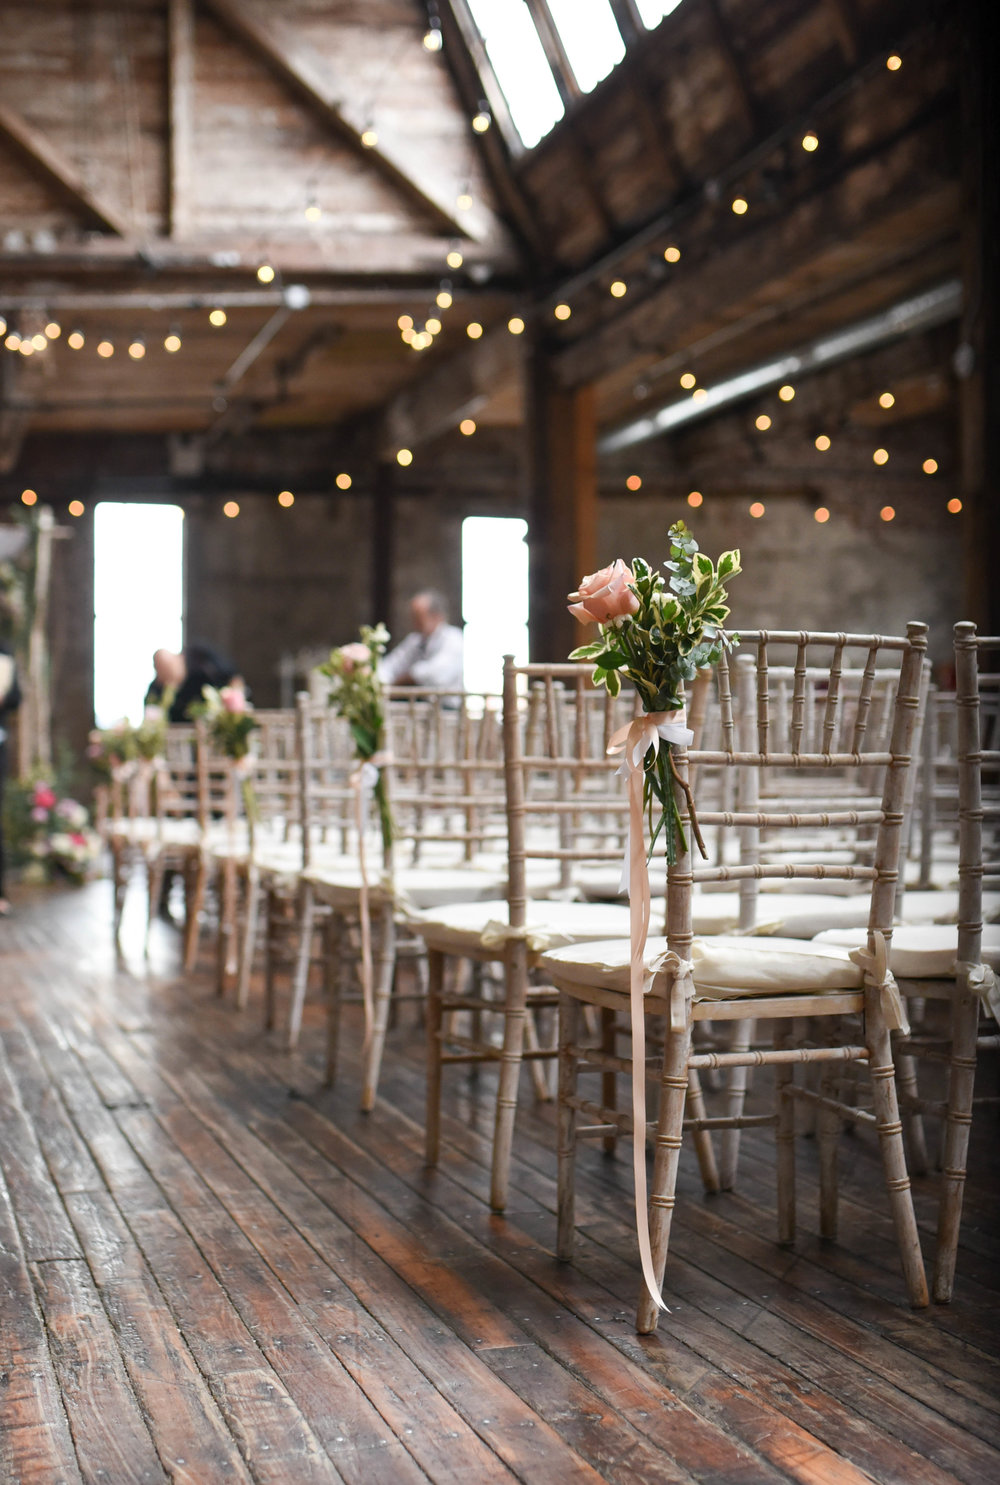 Chair decorations really add something special to the aisle